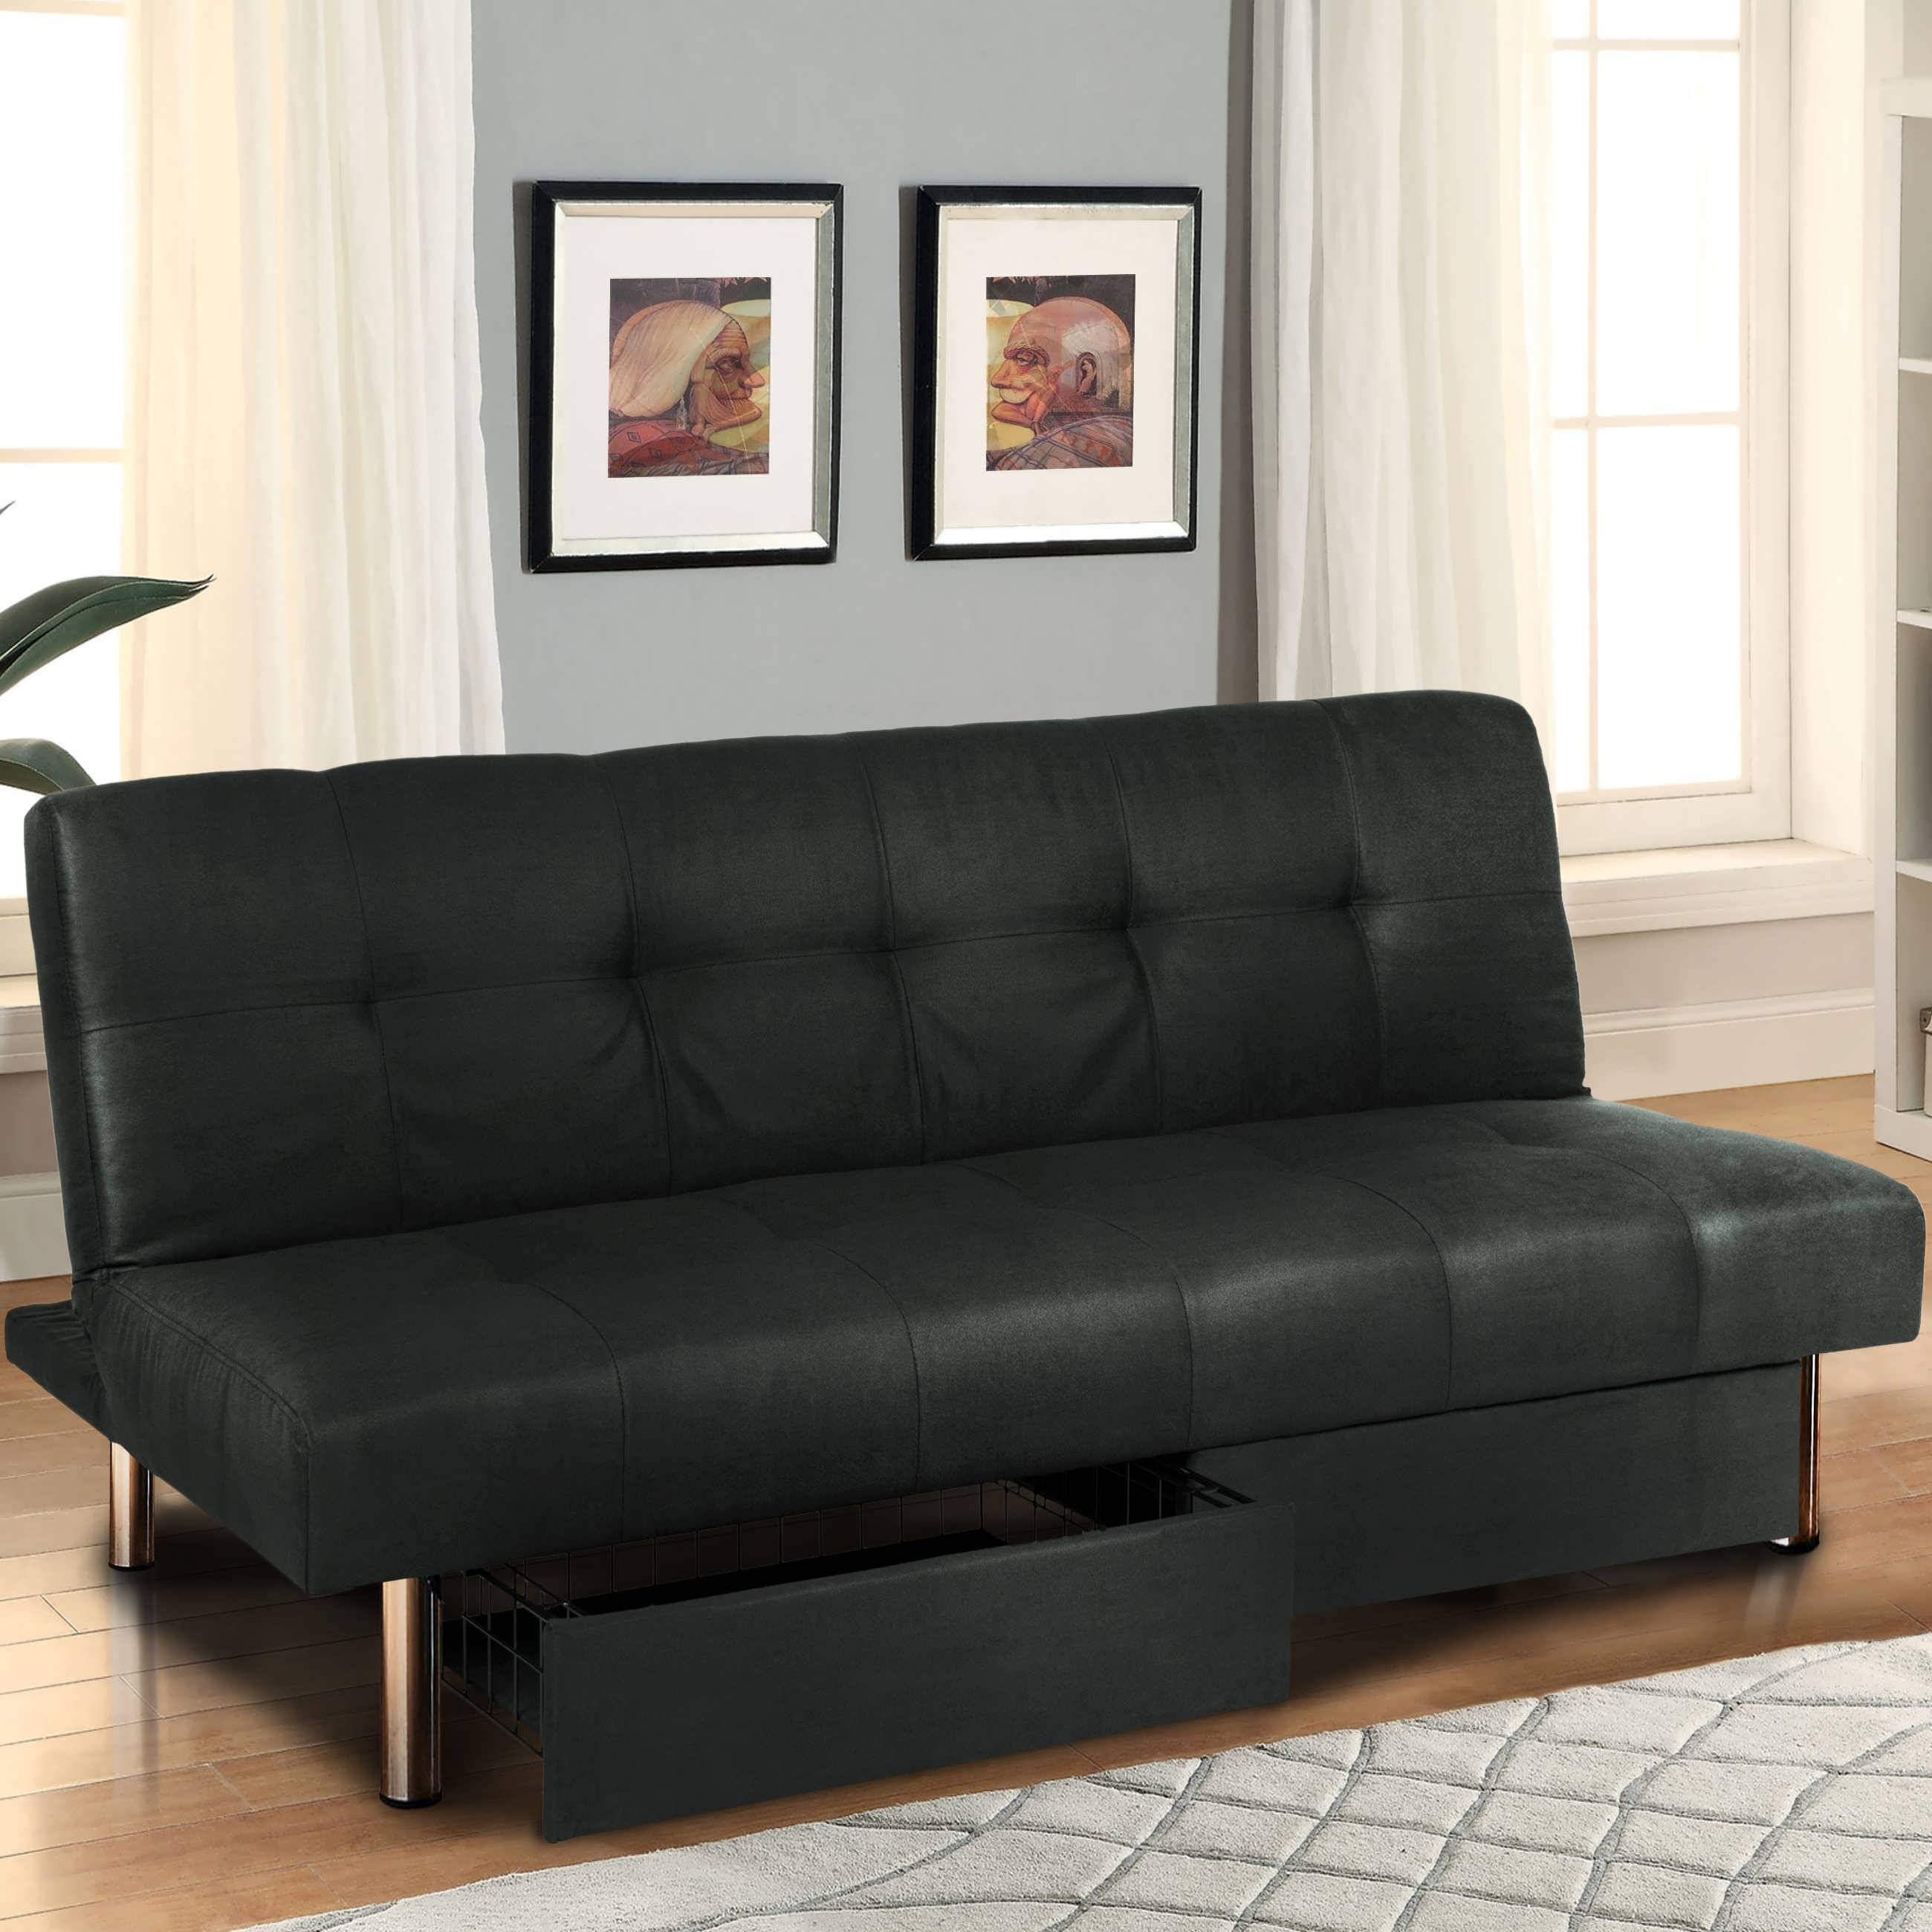 Sofa : Small Sofas For Small Rooms Three Seater Sofa Small Office pertaining to Small Office Sofas (Image 14 of 15)